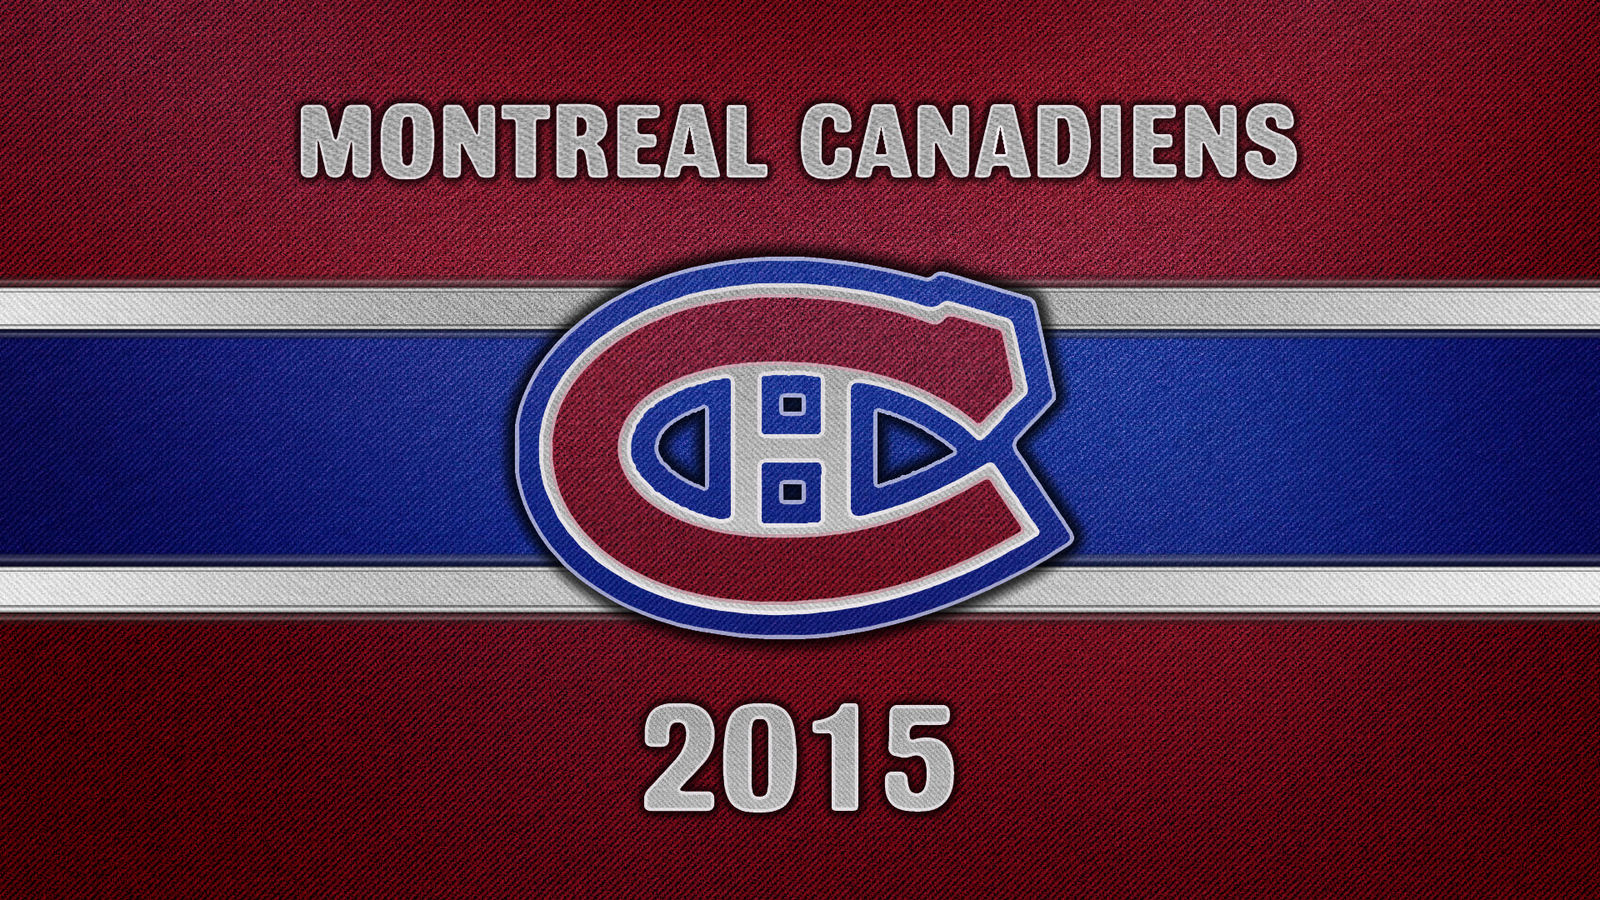 Montreal Canadiens Wallpaper 2015 By Ericrobichaud73 On